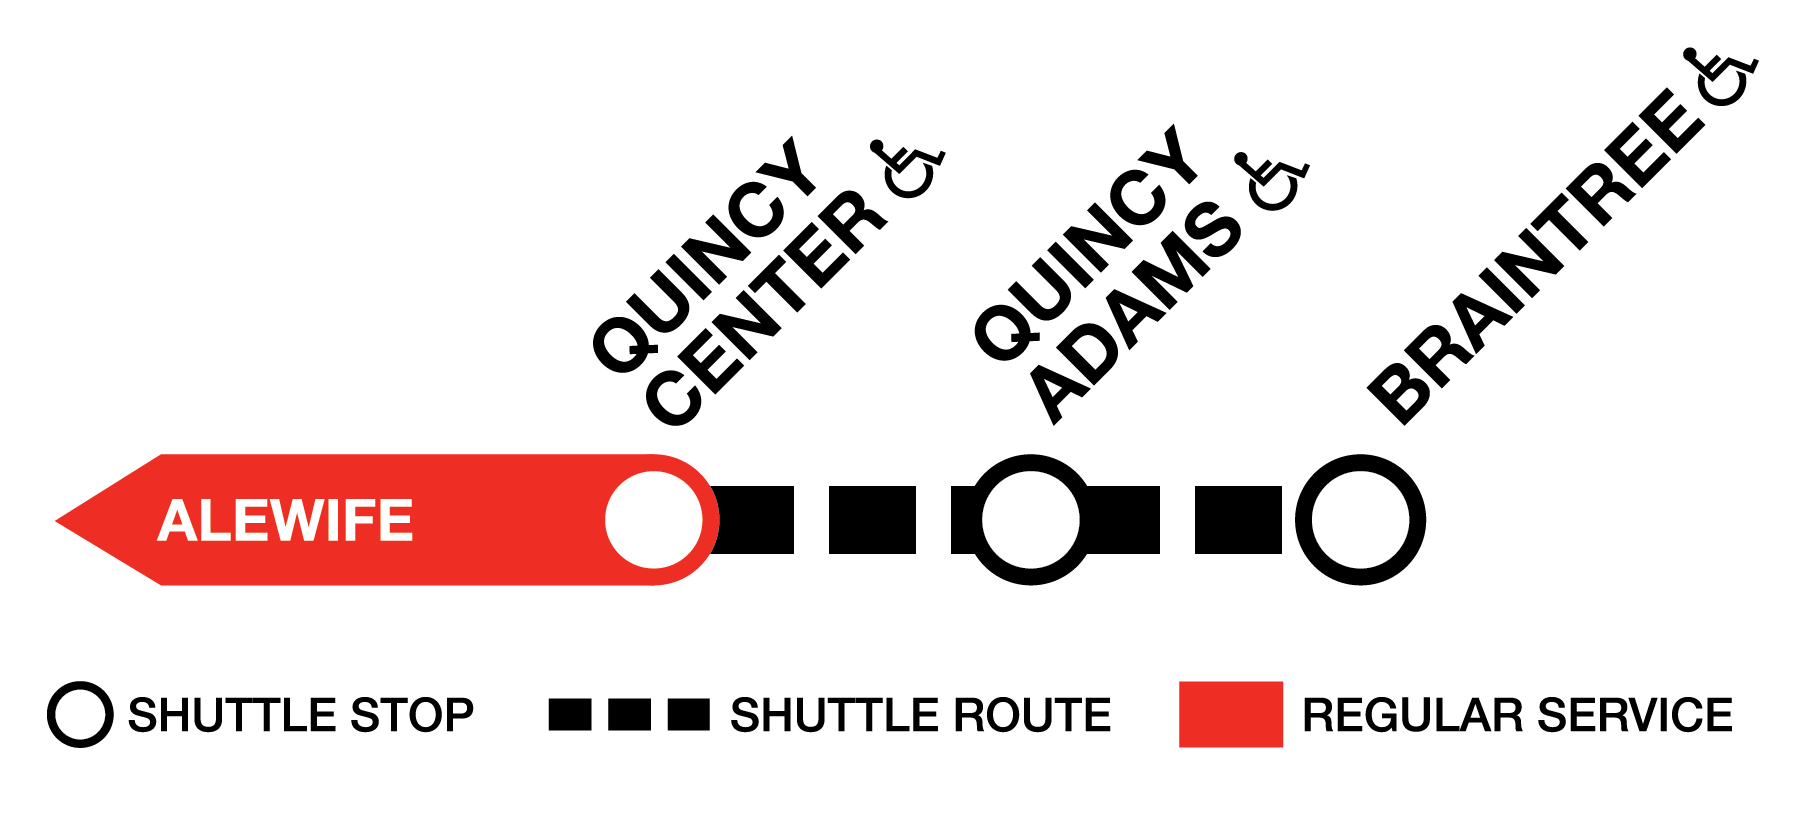 Shuttle diagram showing shuttles running between Quincy Center and Braintree